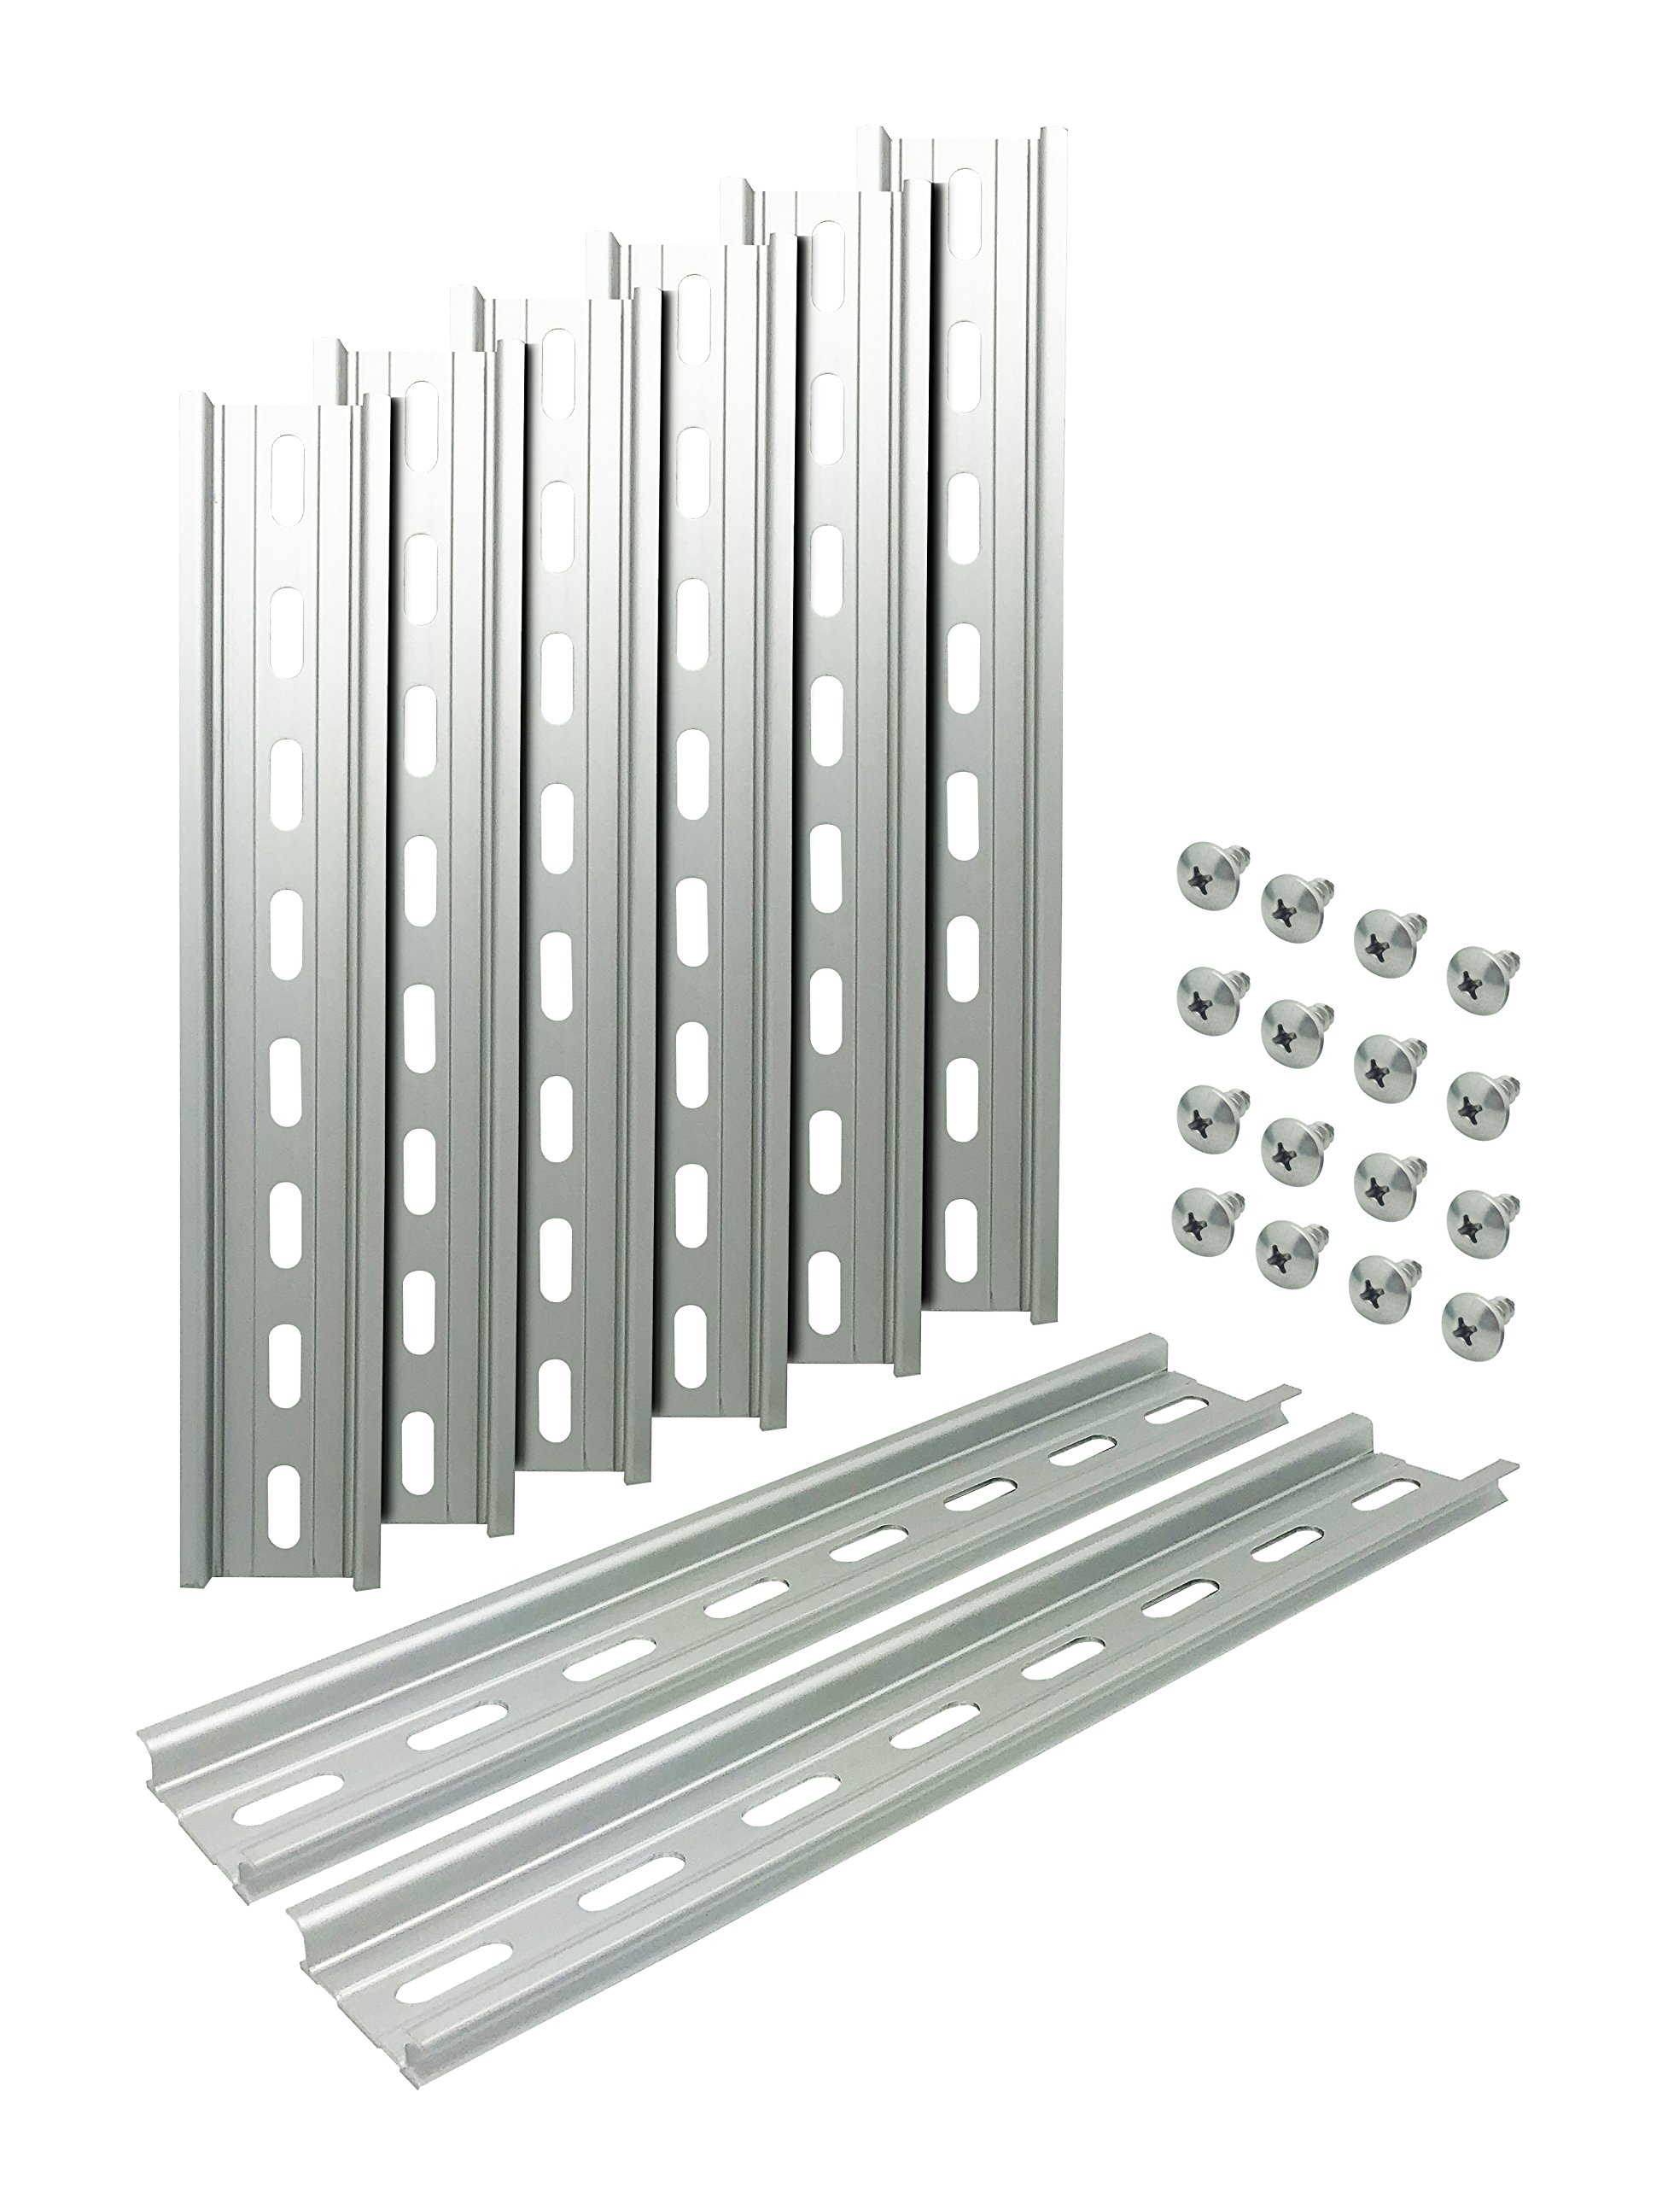 """Electrodepot Slotted Aluminum DIN Rail, 35mm x 8"""", Silver – 8 Pieces with 16#10 Stainless Steel Screws"""